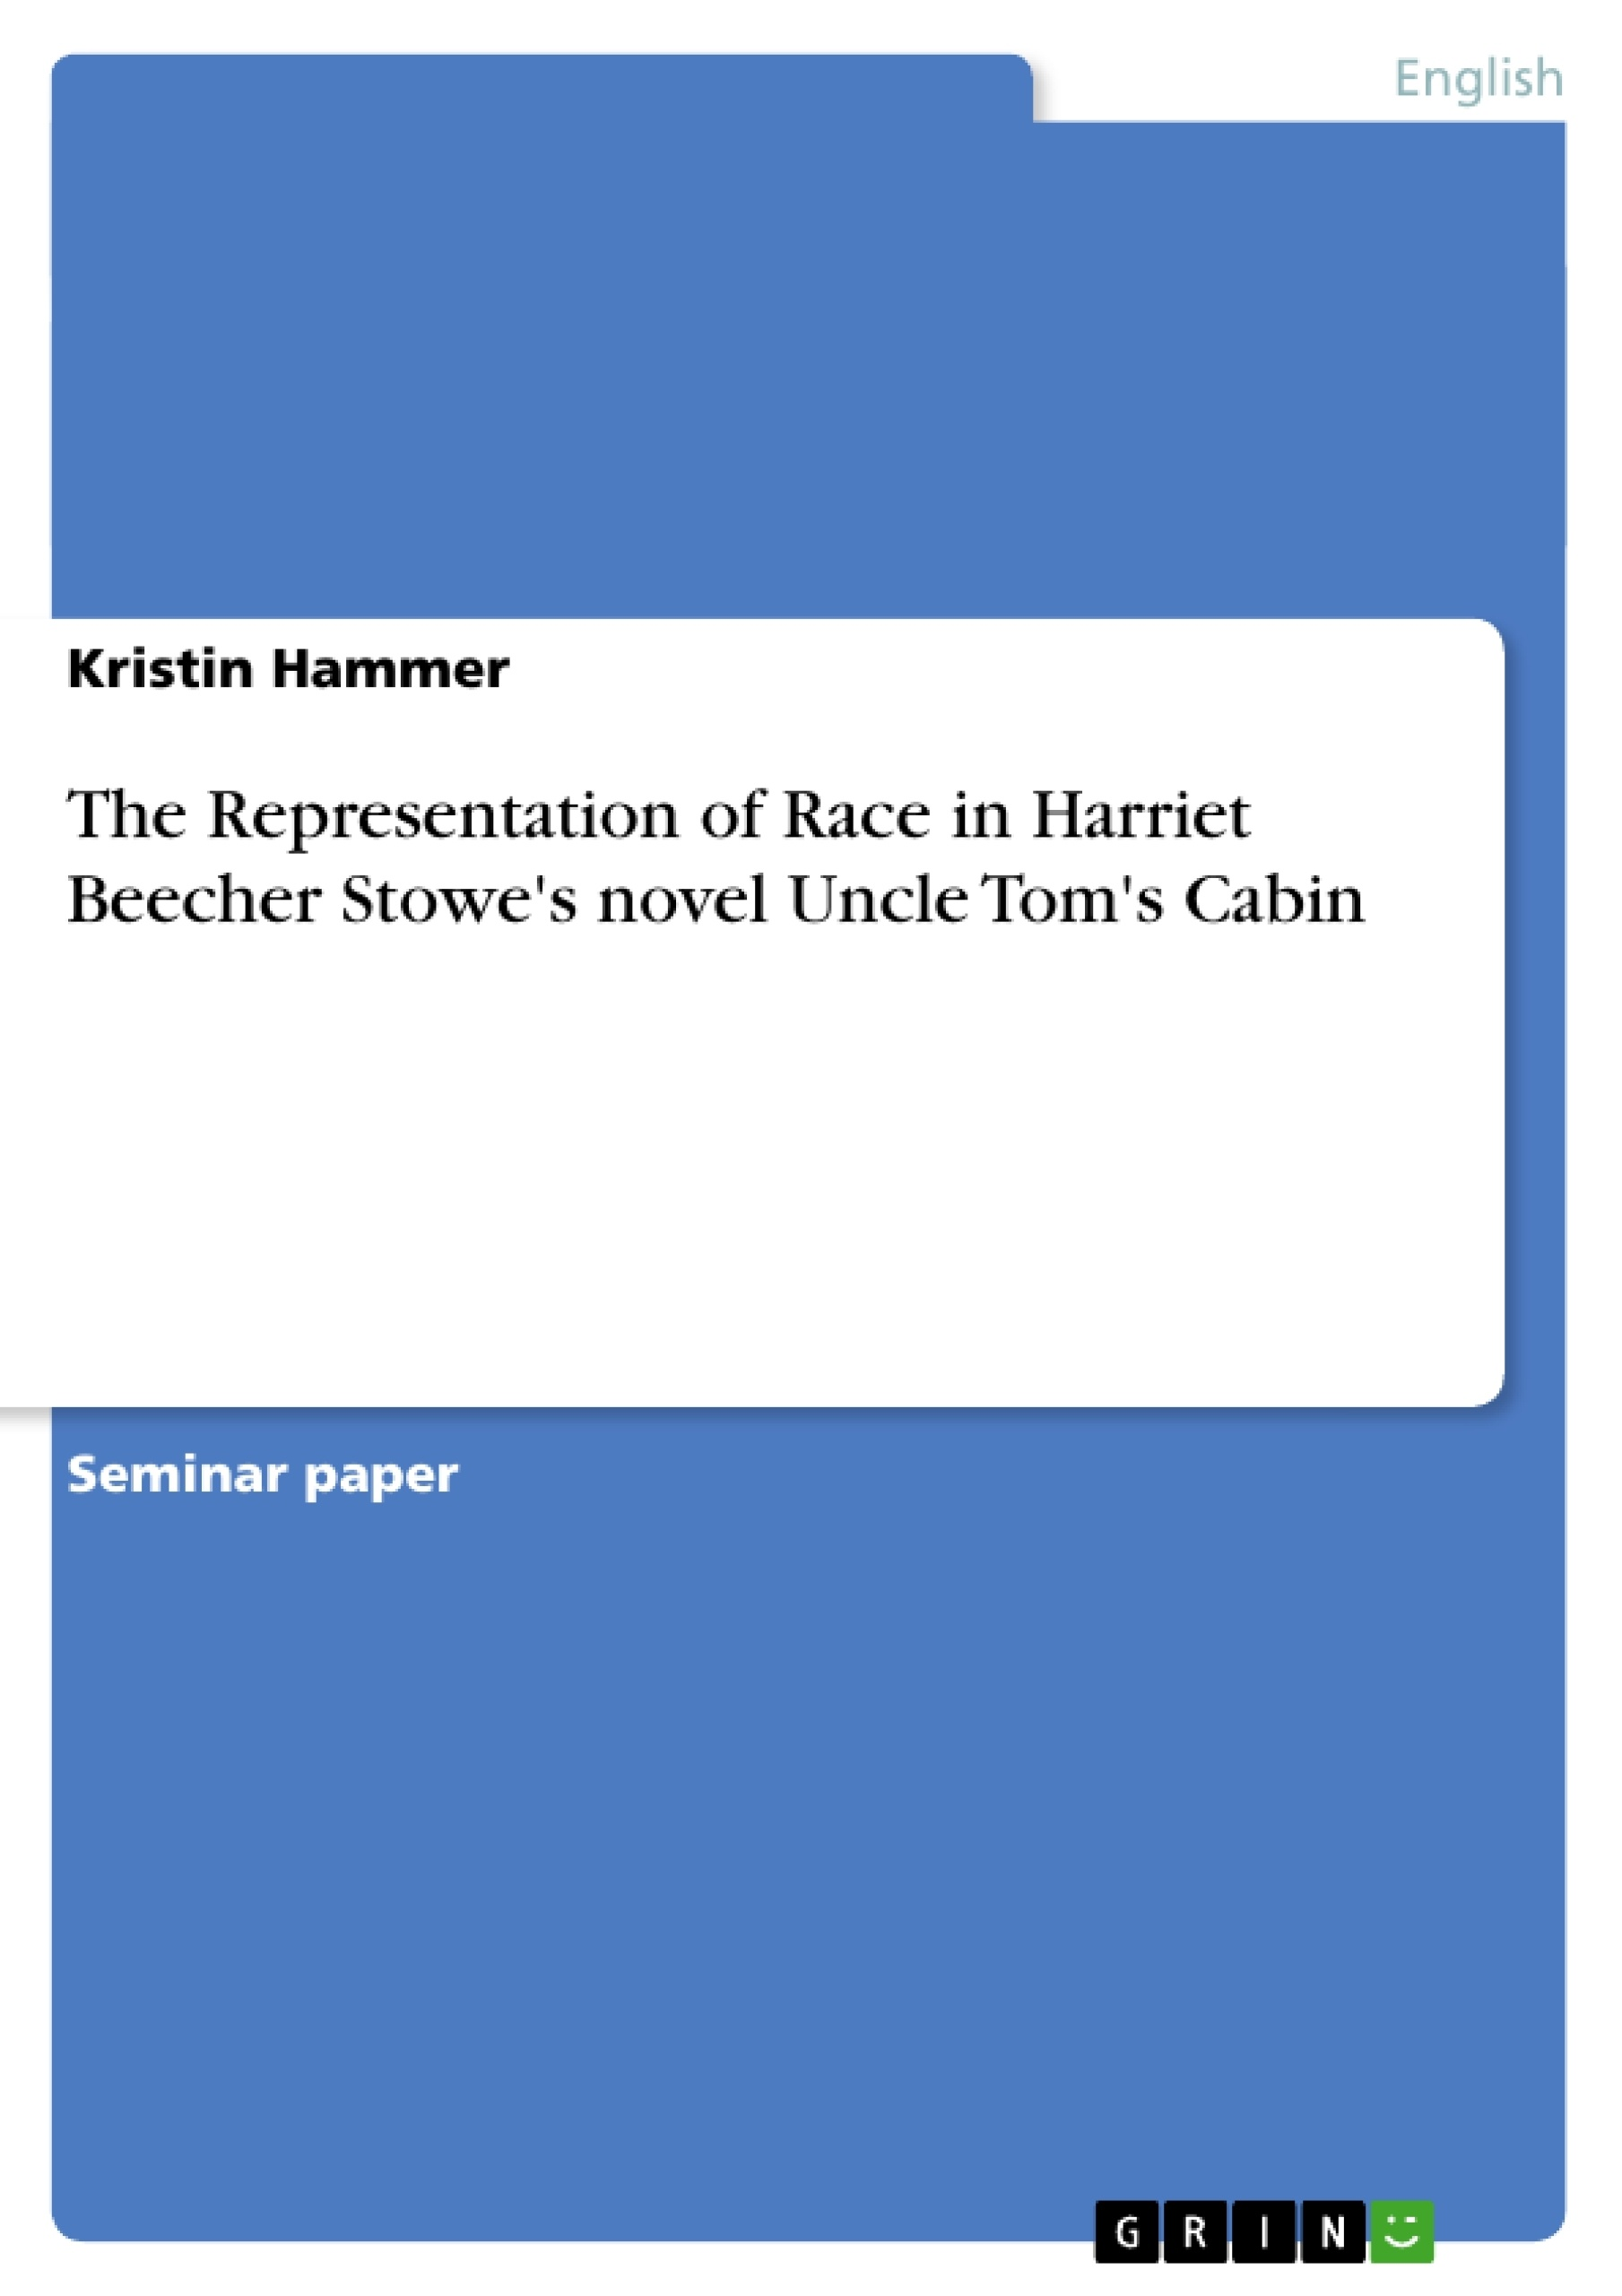 the representation of race in harriet beecher stowe s novel uncle  upload your own papers earn money and win an iphone x